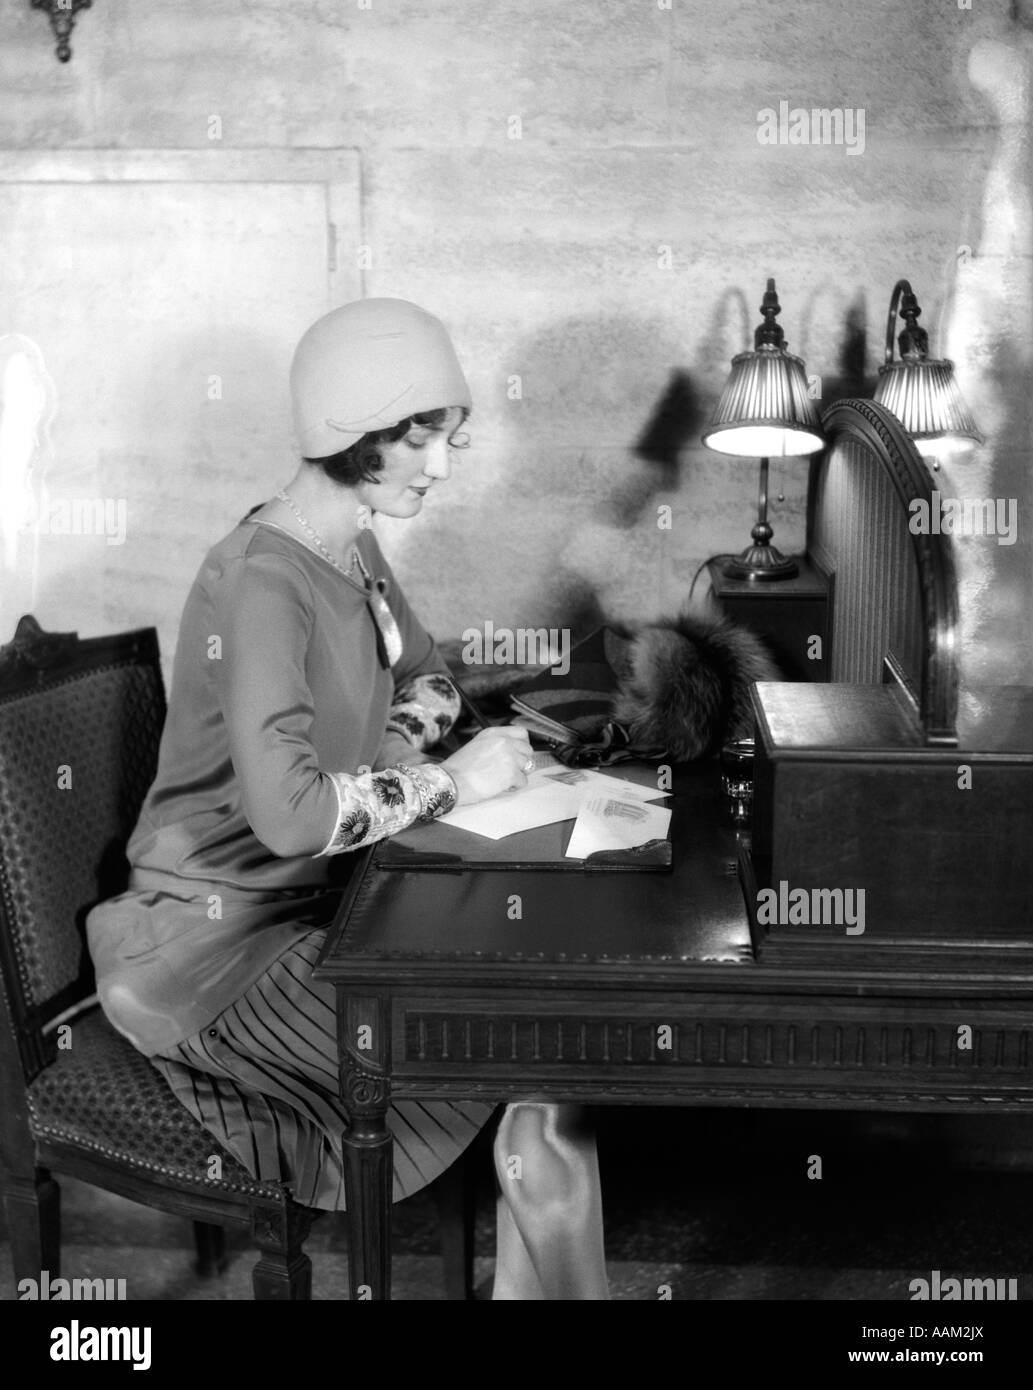 1920s WOMAN SITTING AT DESK WRITING LETTER BY LAMP FASHION CLOCHE HAT HOTEL LOBBY Stock Photo